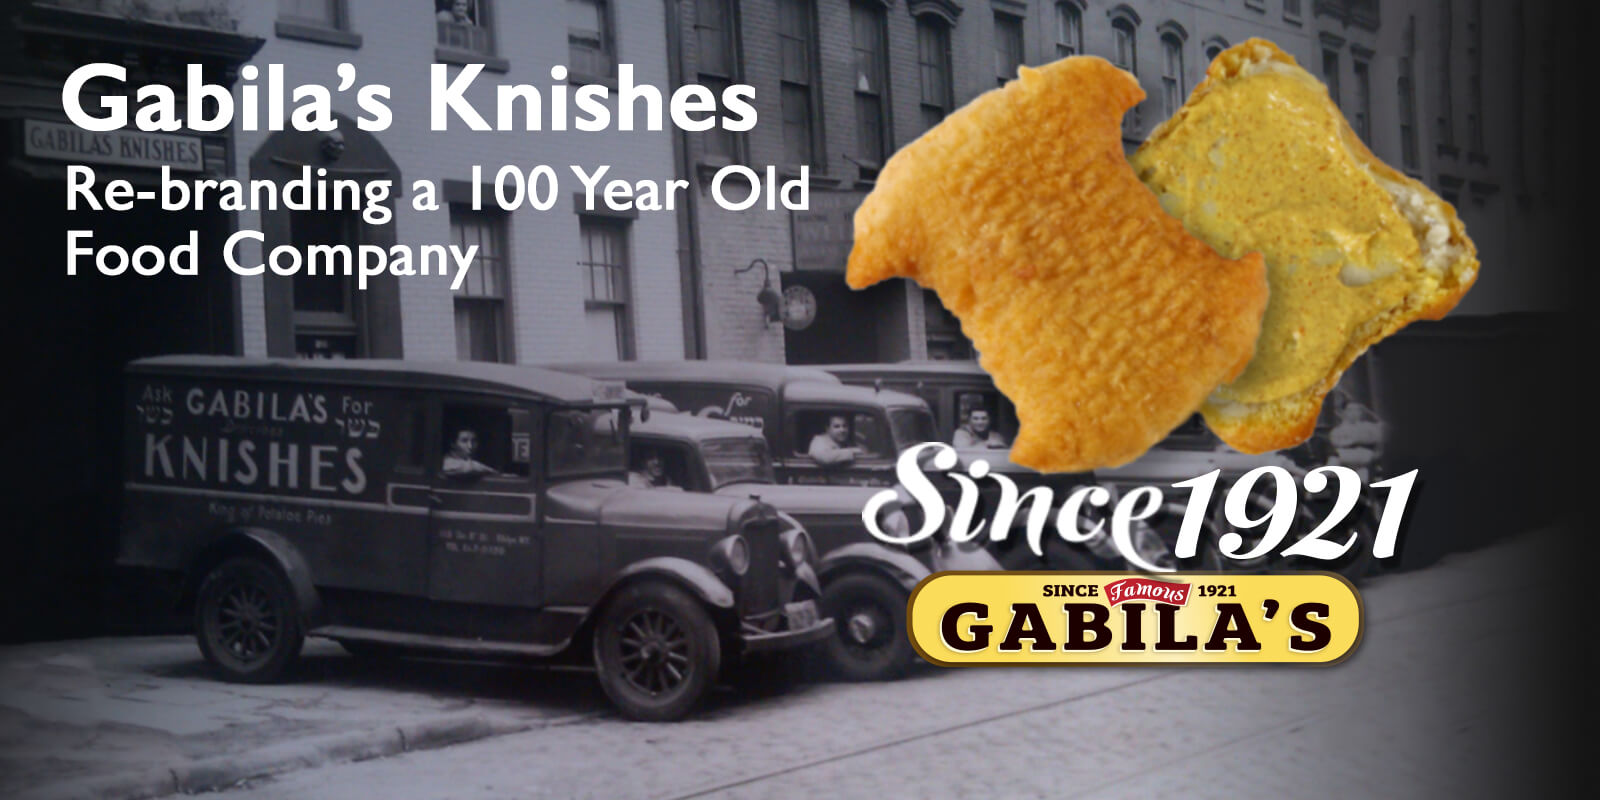 Gabila's Knishes: Marketing an (almost) 100 Year Old Food Company